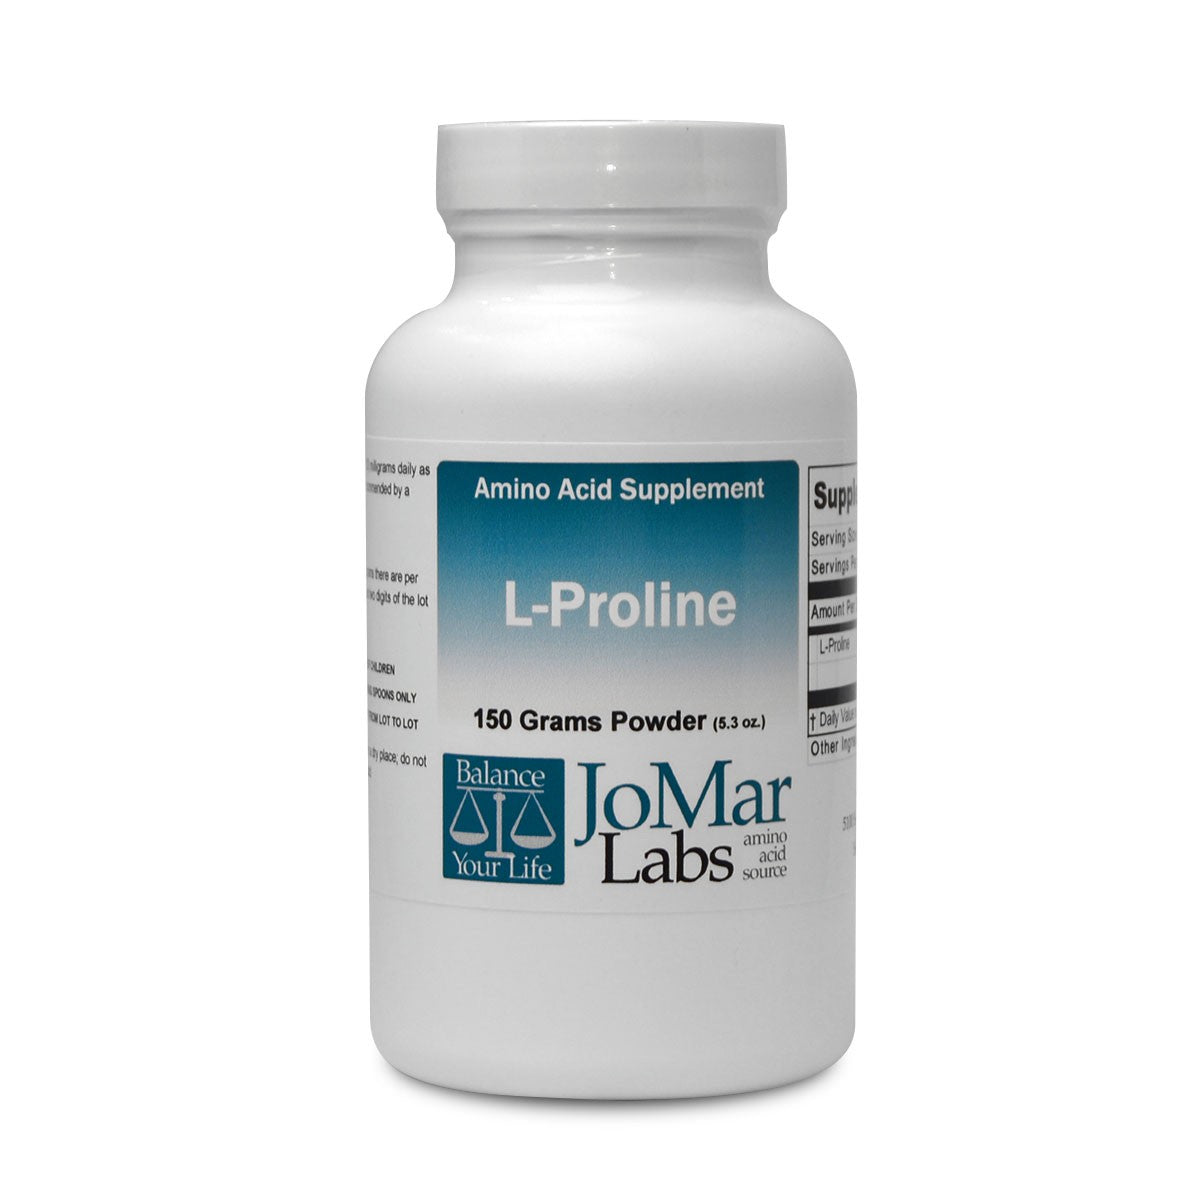 L-Proline 150 grams powder